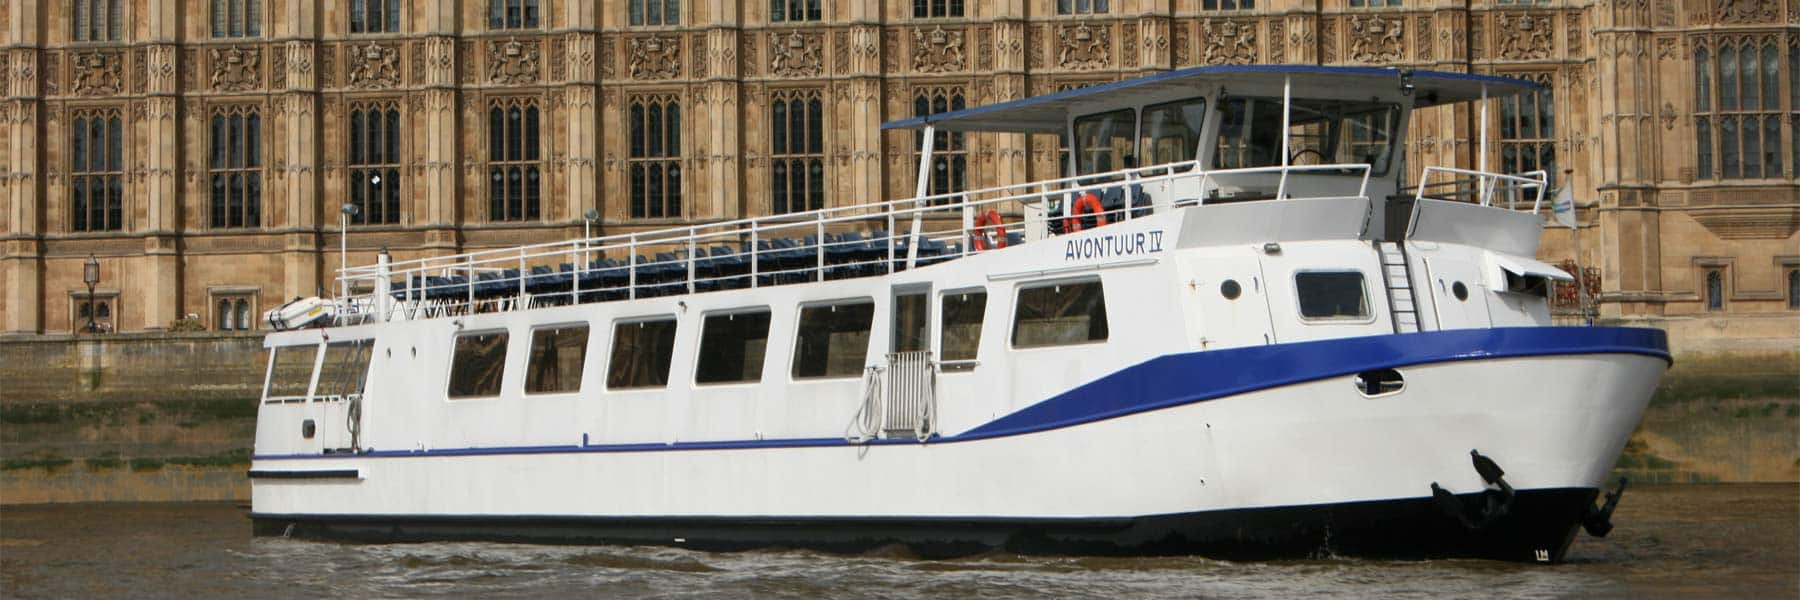 M.V Avontuur IV passing the New Palace of Westminster (Houses of Parliament)